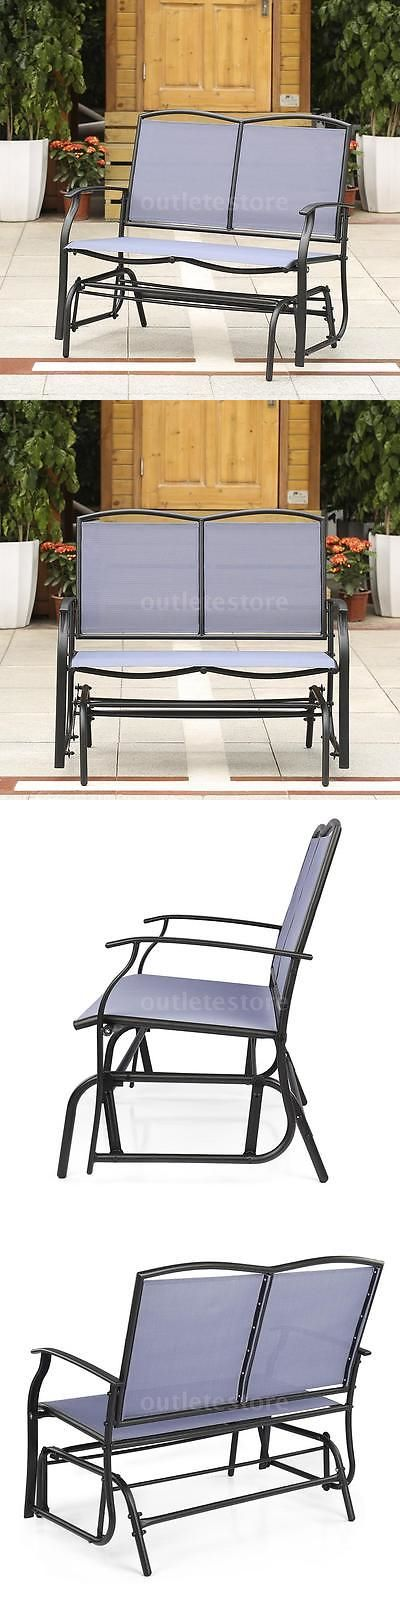 Benches 79678: Ikayaa Outdoor Patio Glider Bench Loveseat 2-Seat Rocking Chair Dark Blue A6k7 -> BUY IT NOW ONLY: $65.98 on eBay!